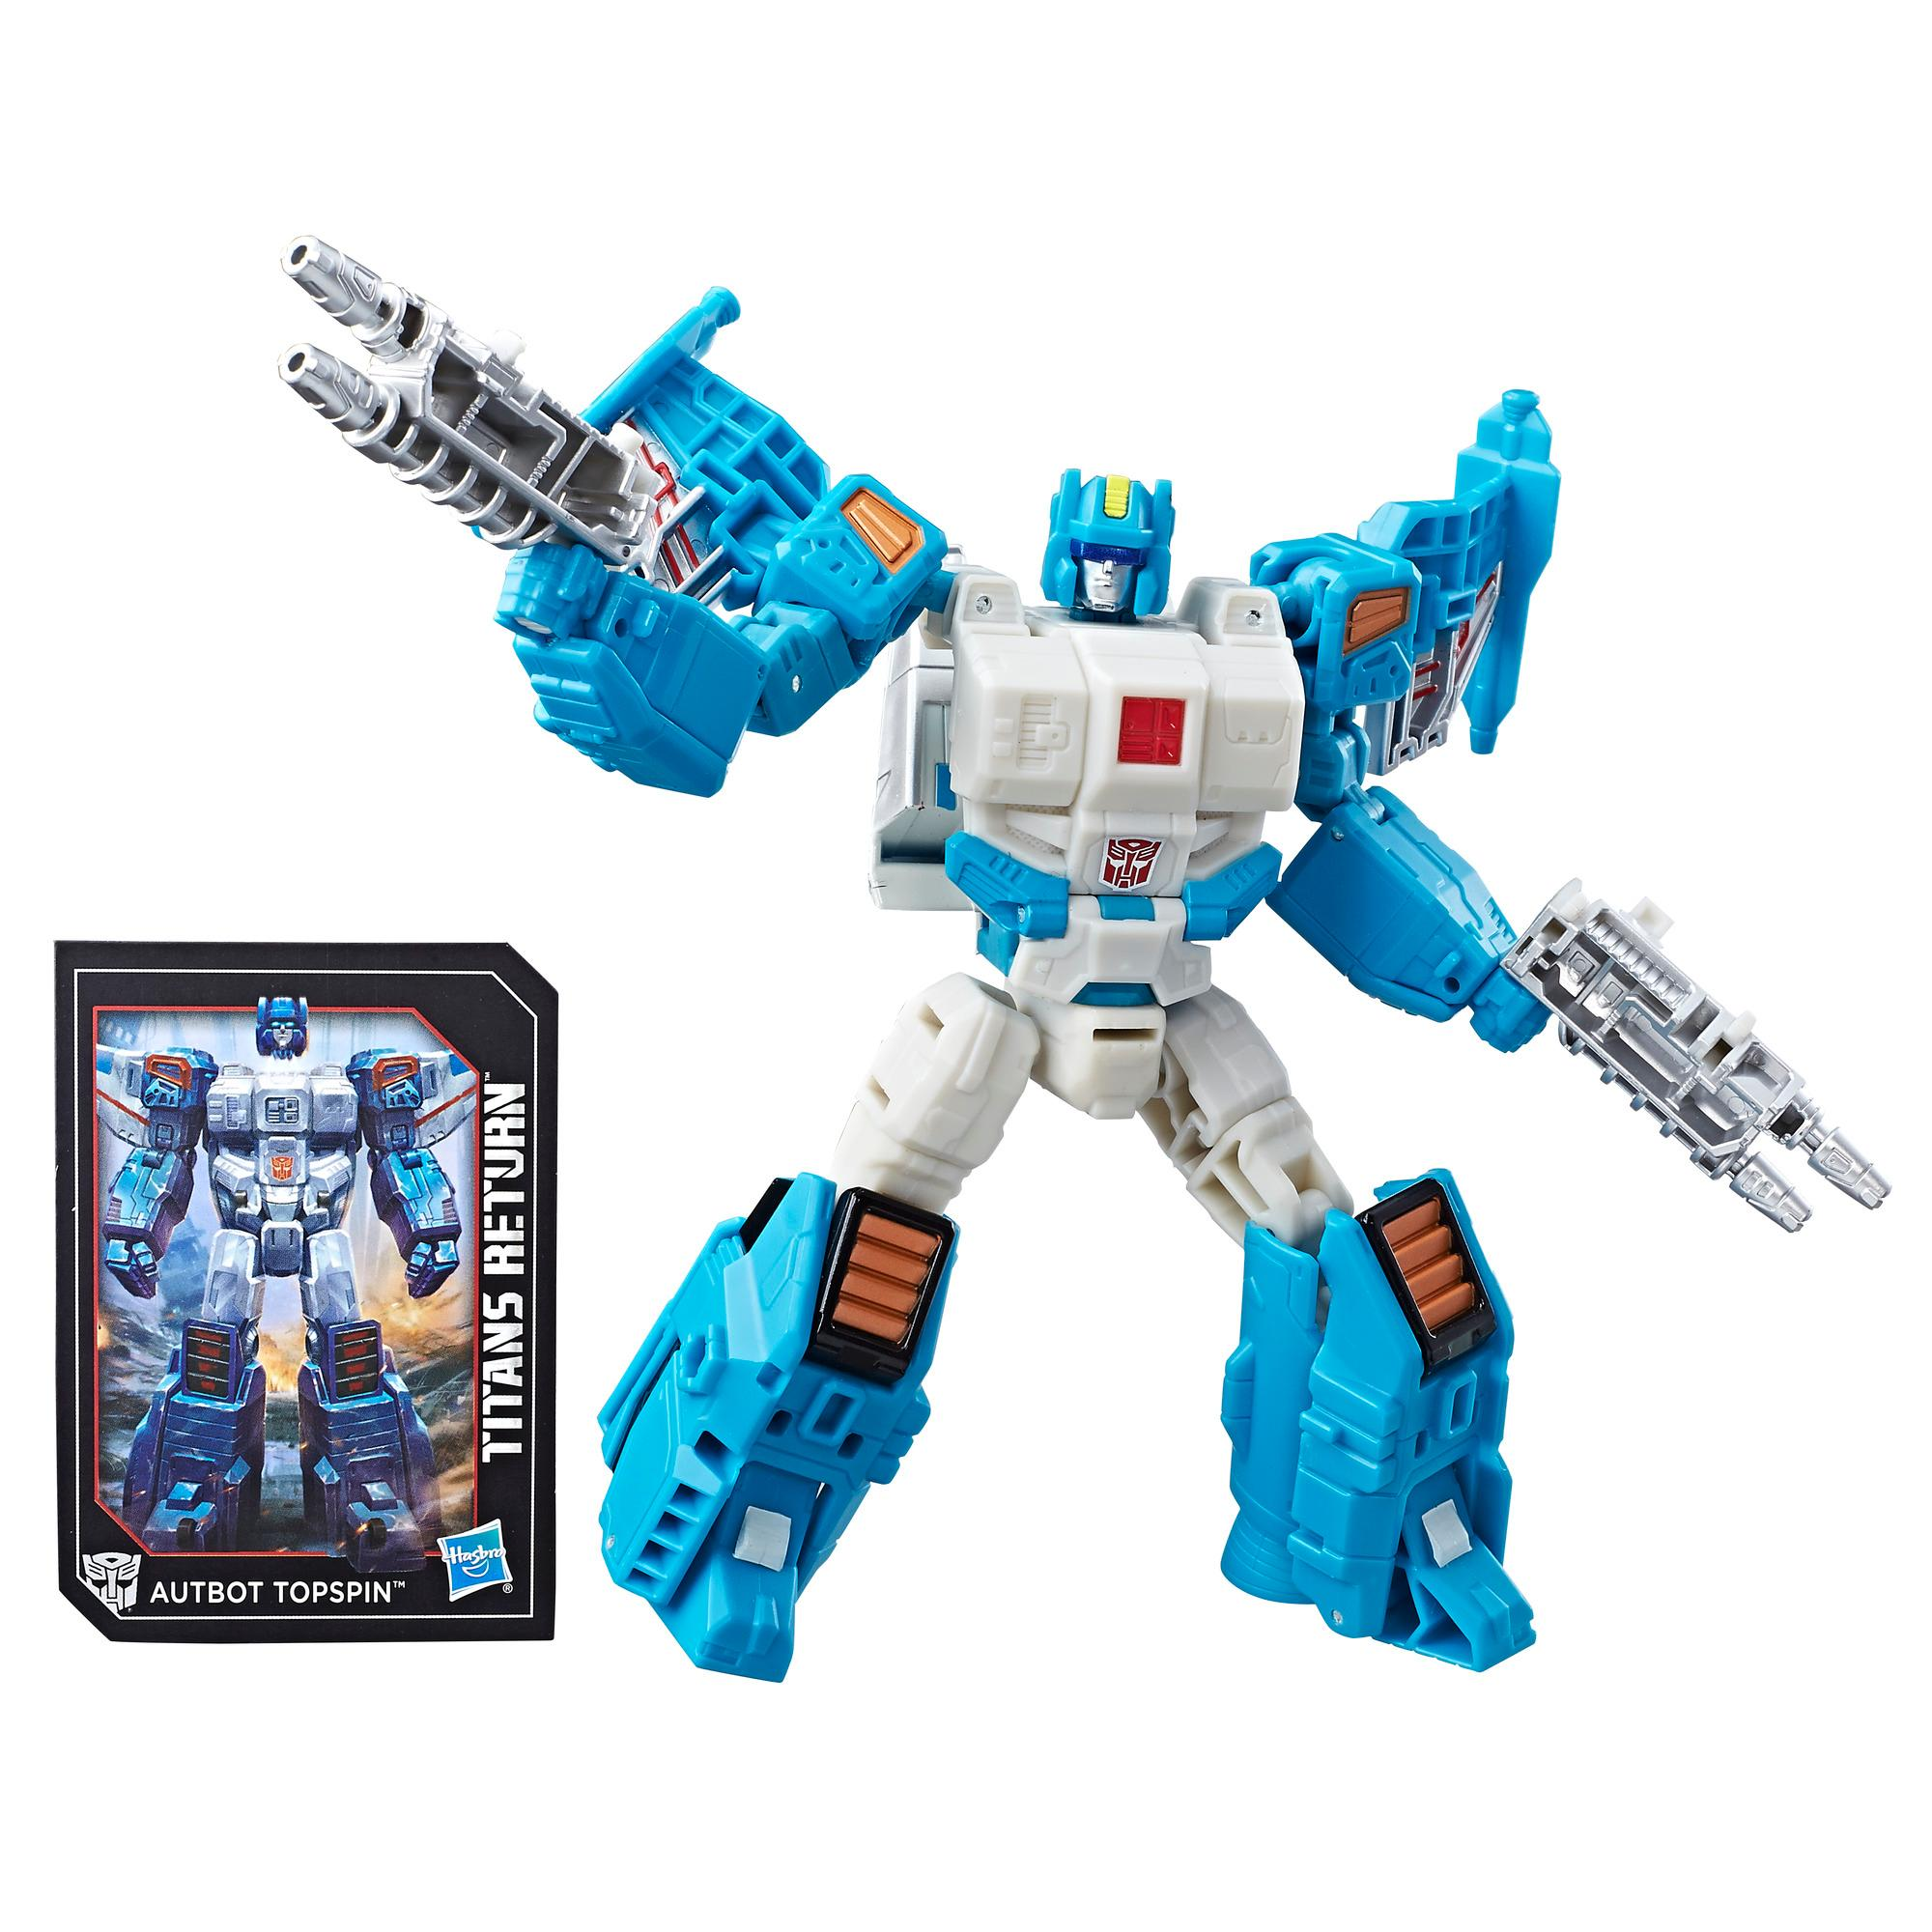 Transformers Generations Titans Return Autobot Topspin and Freezeout